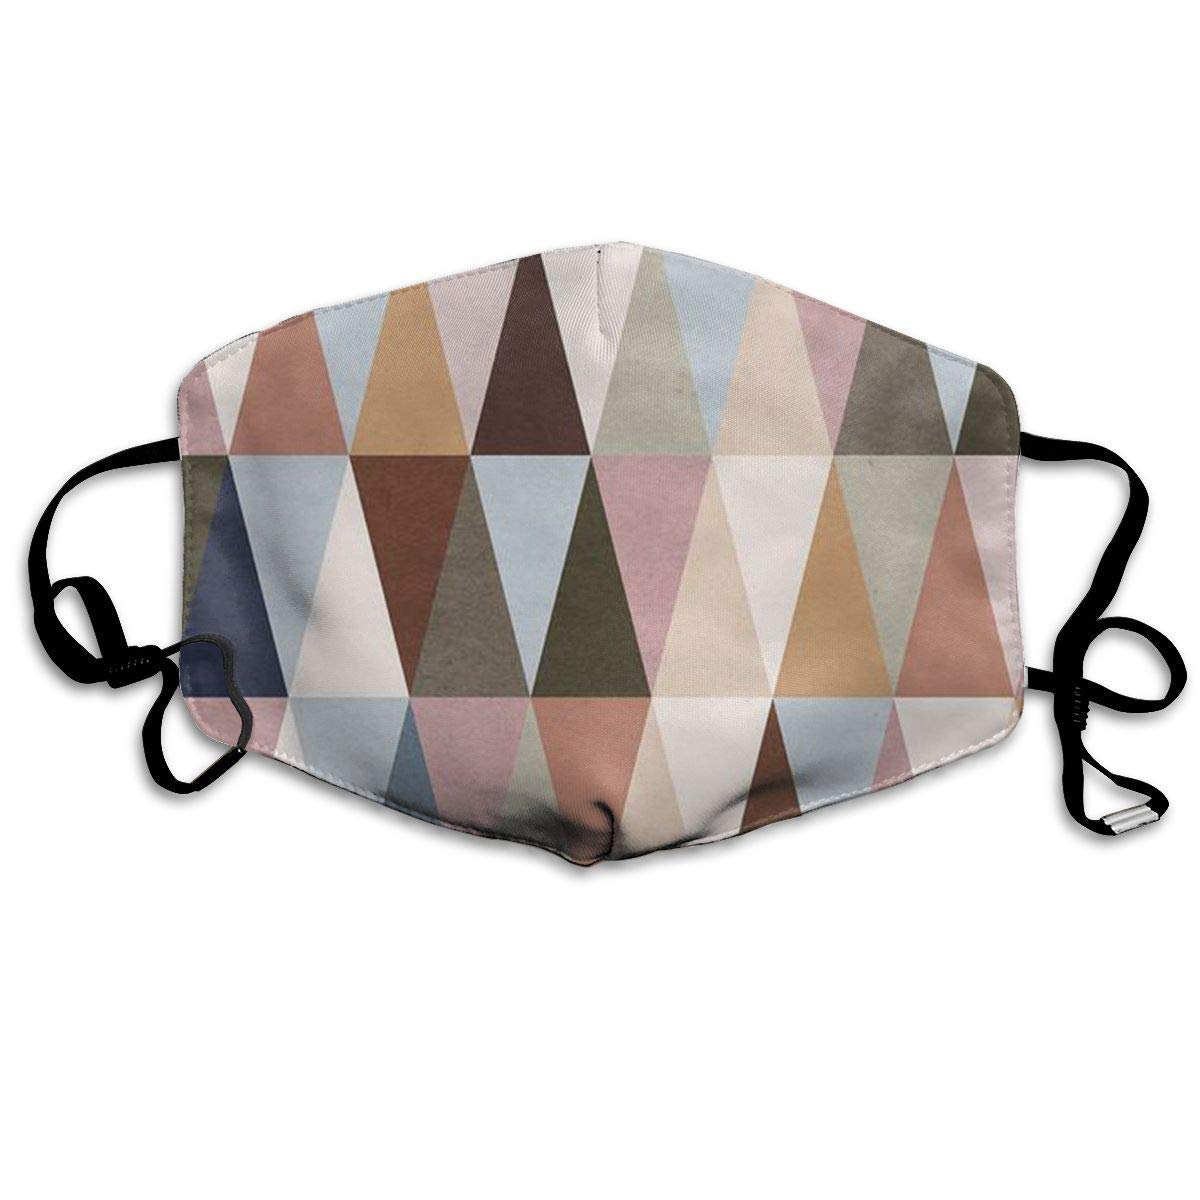 Daawqee Mascarillas, Earth Triangles Anti Dust Face Mouth Cover Mask Respirator Cotton Protective Breath Healthy Safety Warm Windproof Mask